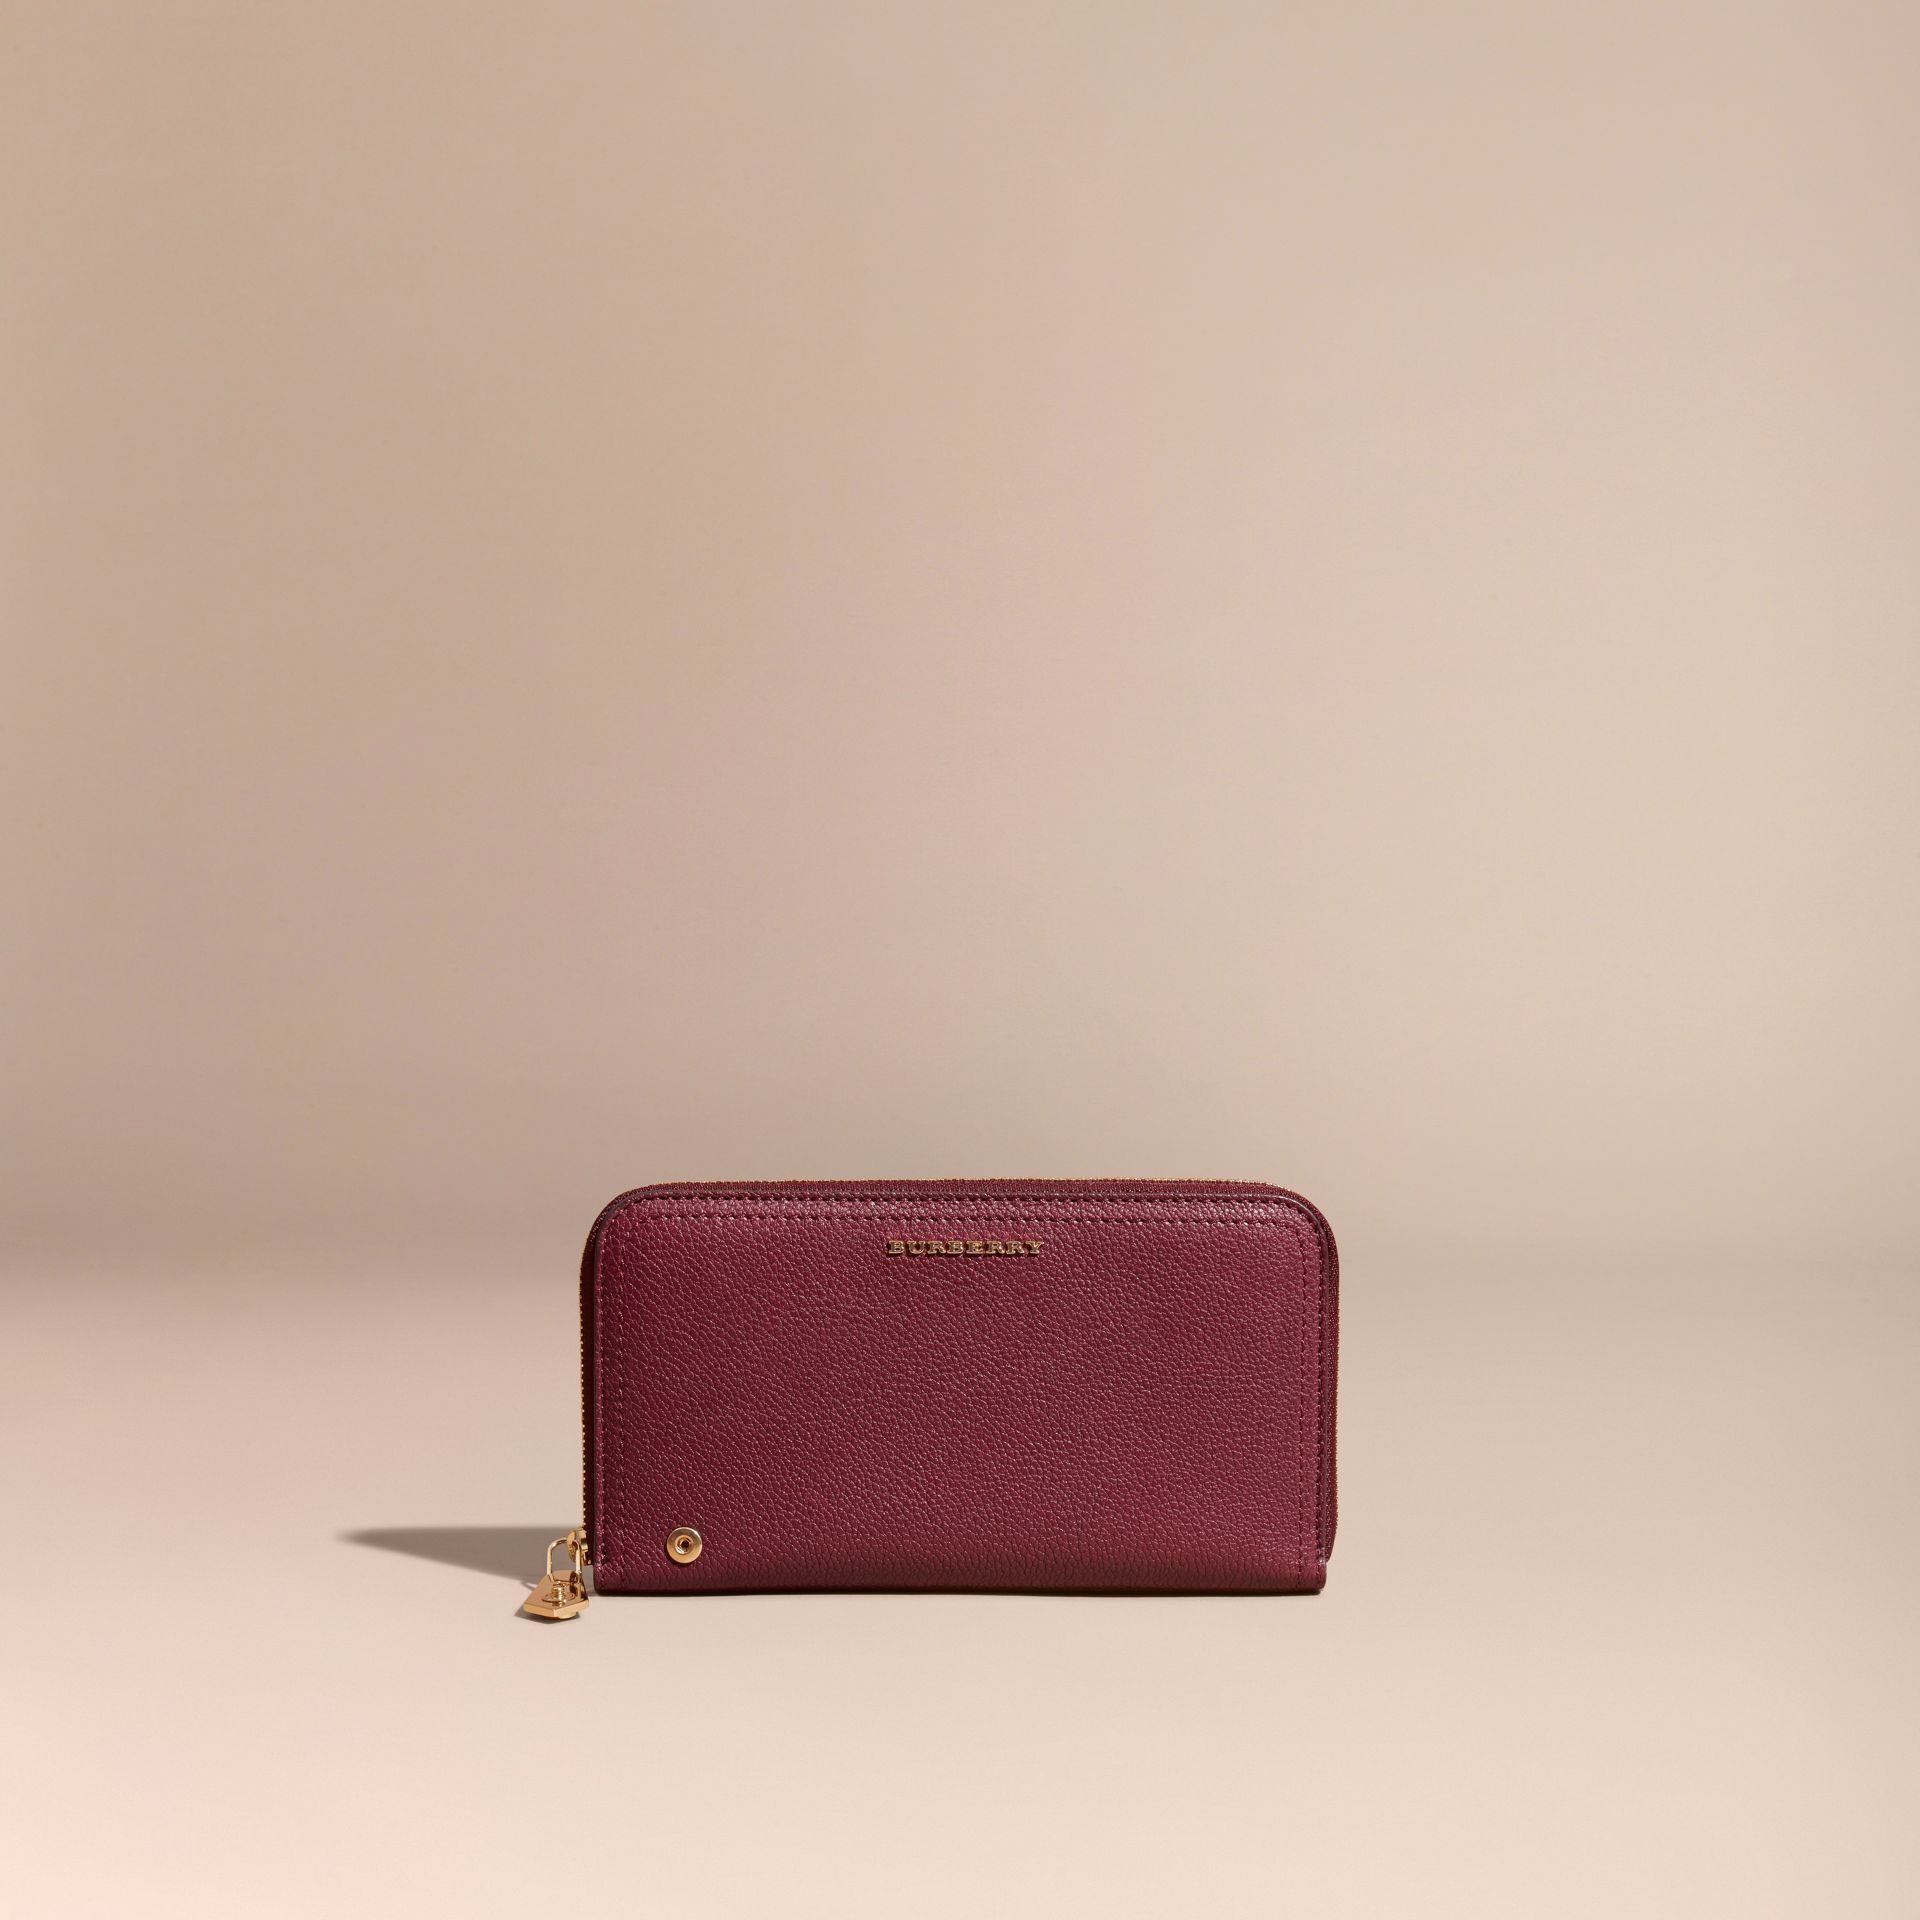 Dark plum Grainy Leather Ziparound Wallet Dark Plum - gallery image 6